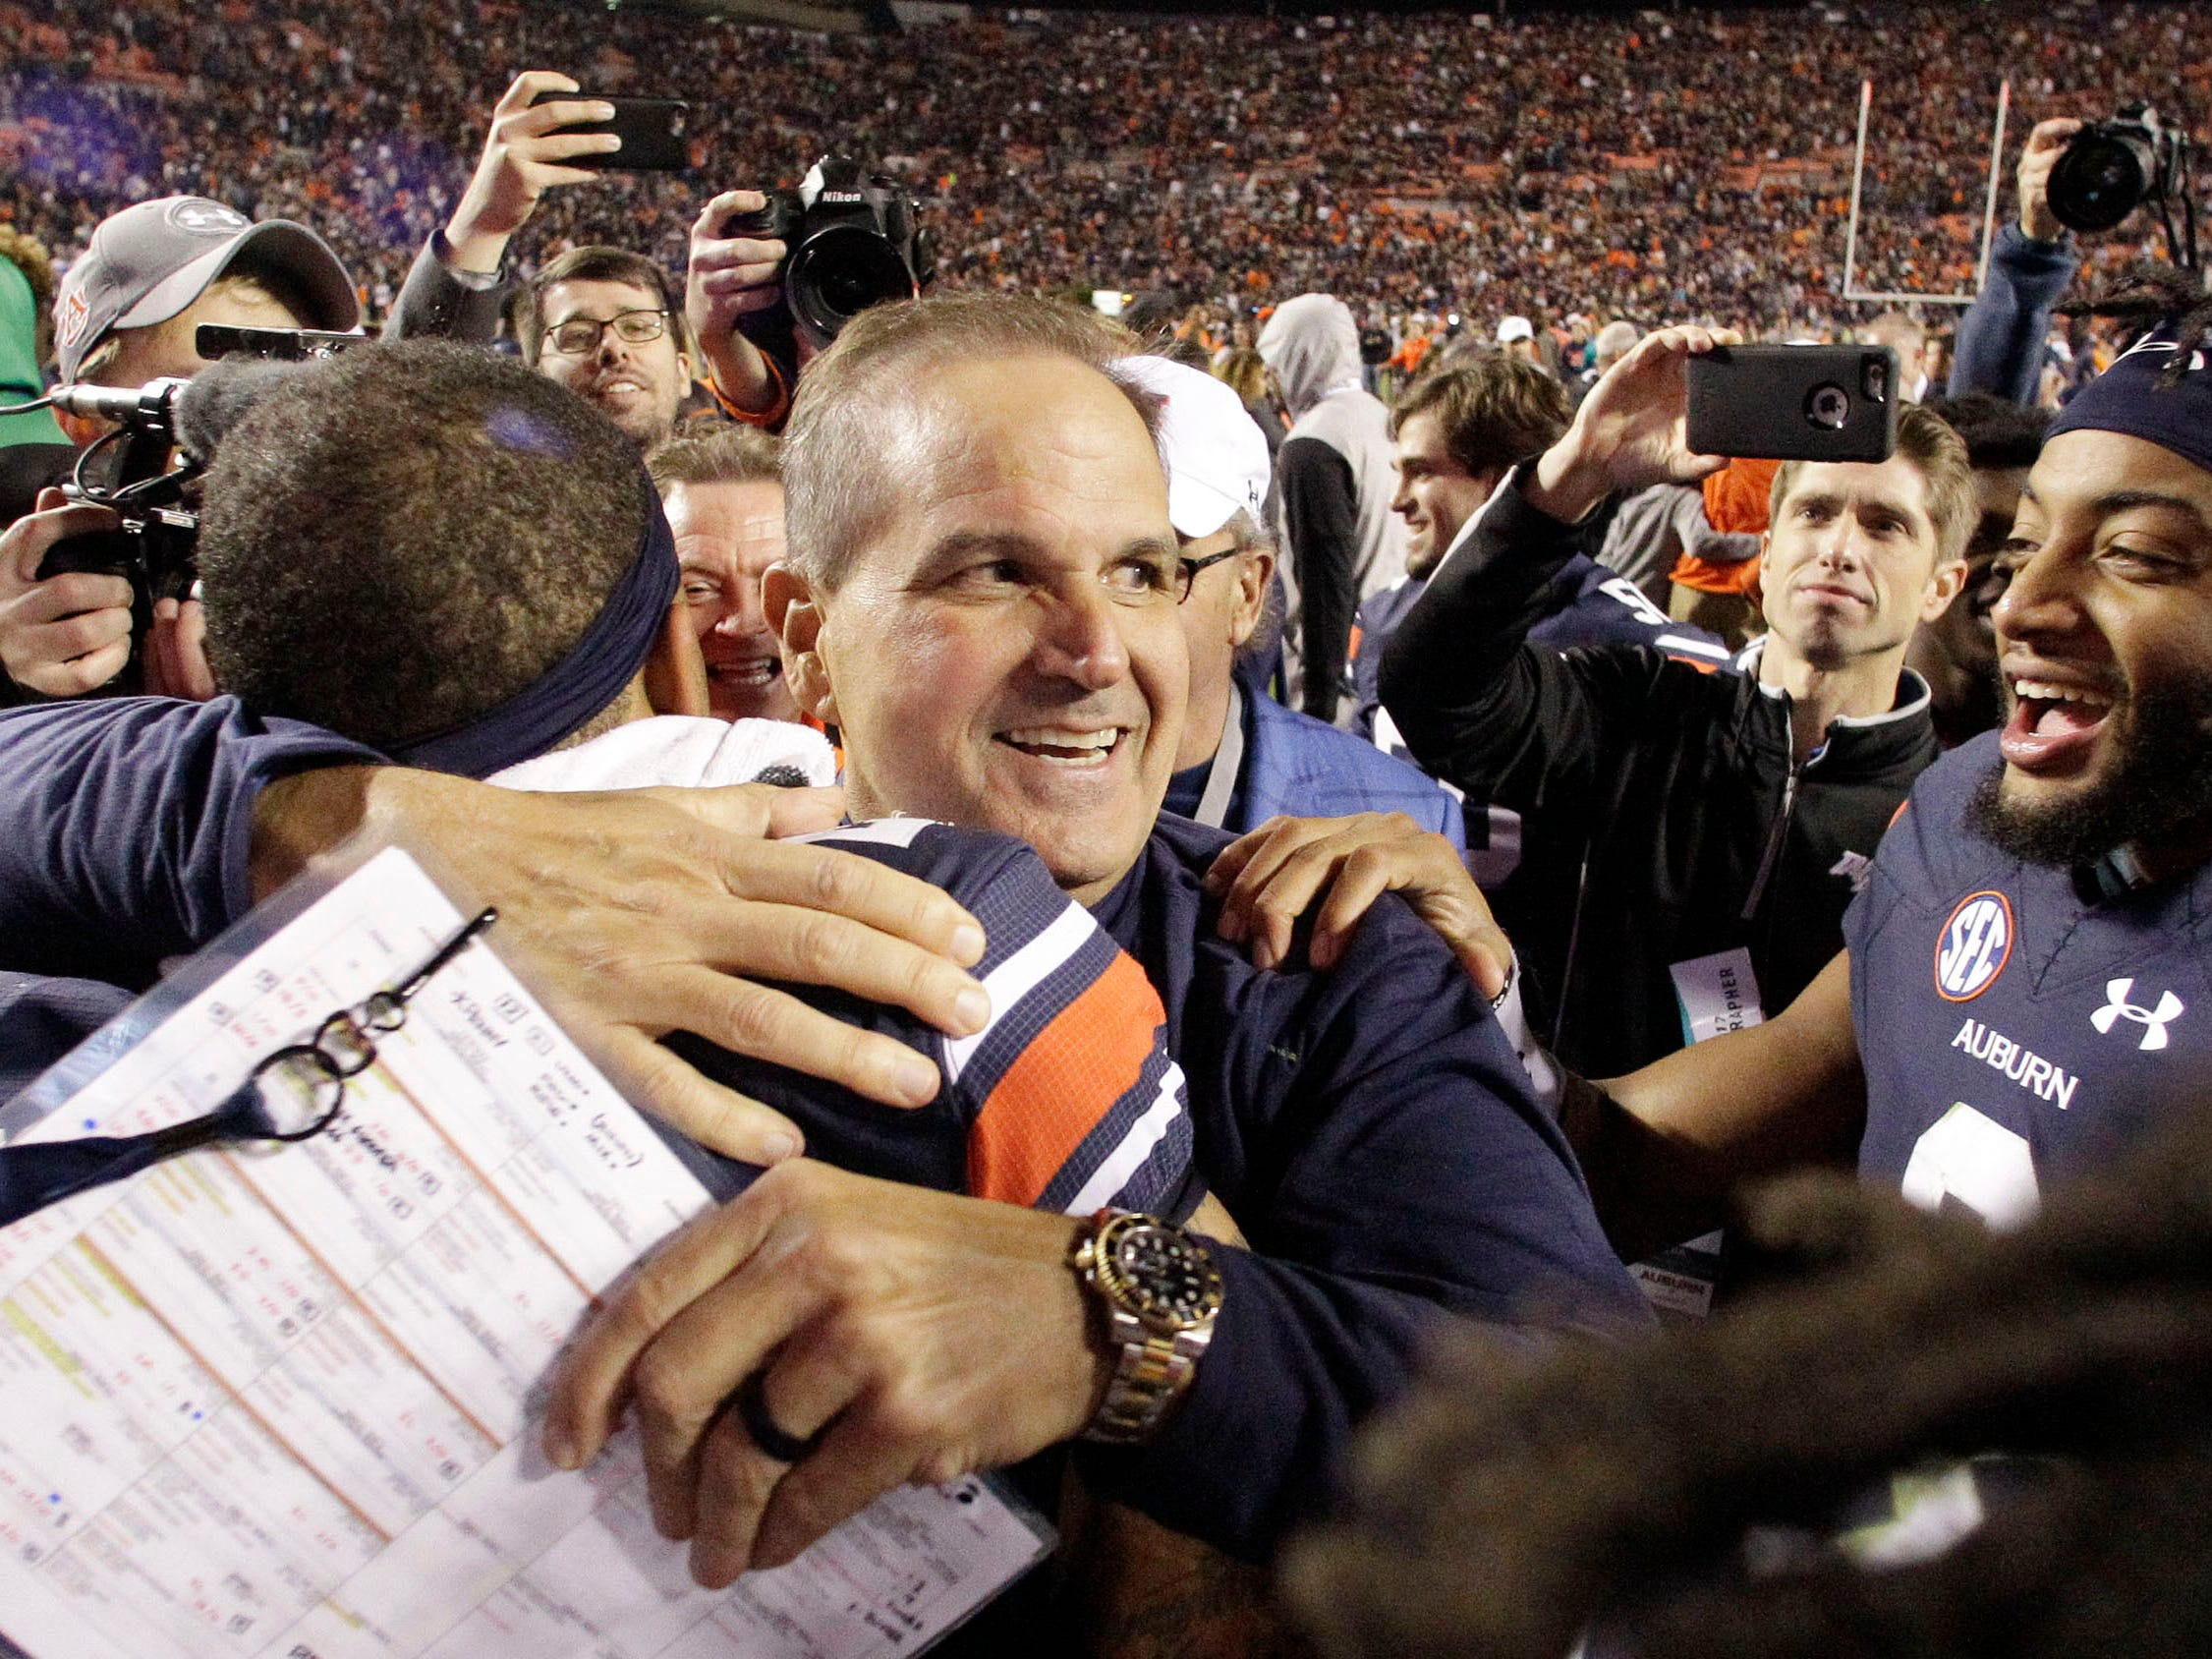 No. 3: Kevin Steele, Auburn defensive coordinator: $2,050,500. Steele made $1.2 million last season. A new, three-year contract signed in 2018 increased his basic annual pay to $1.8 million and kept from his prior contract a $250,000, one-time retention payment that became due at the end of the 2018 regular season – his third with the Tigers. His basic annual pay is set to be $1.9 million in 2019 and $2 million in 2020.